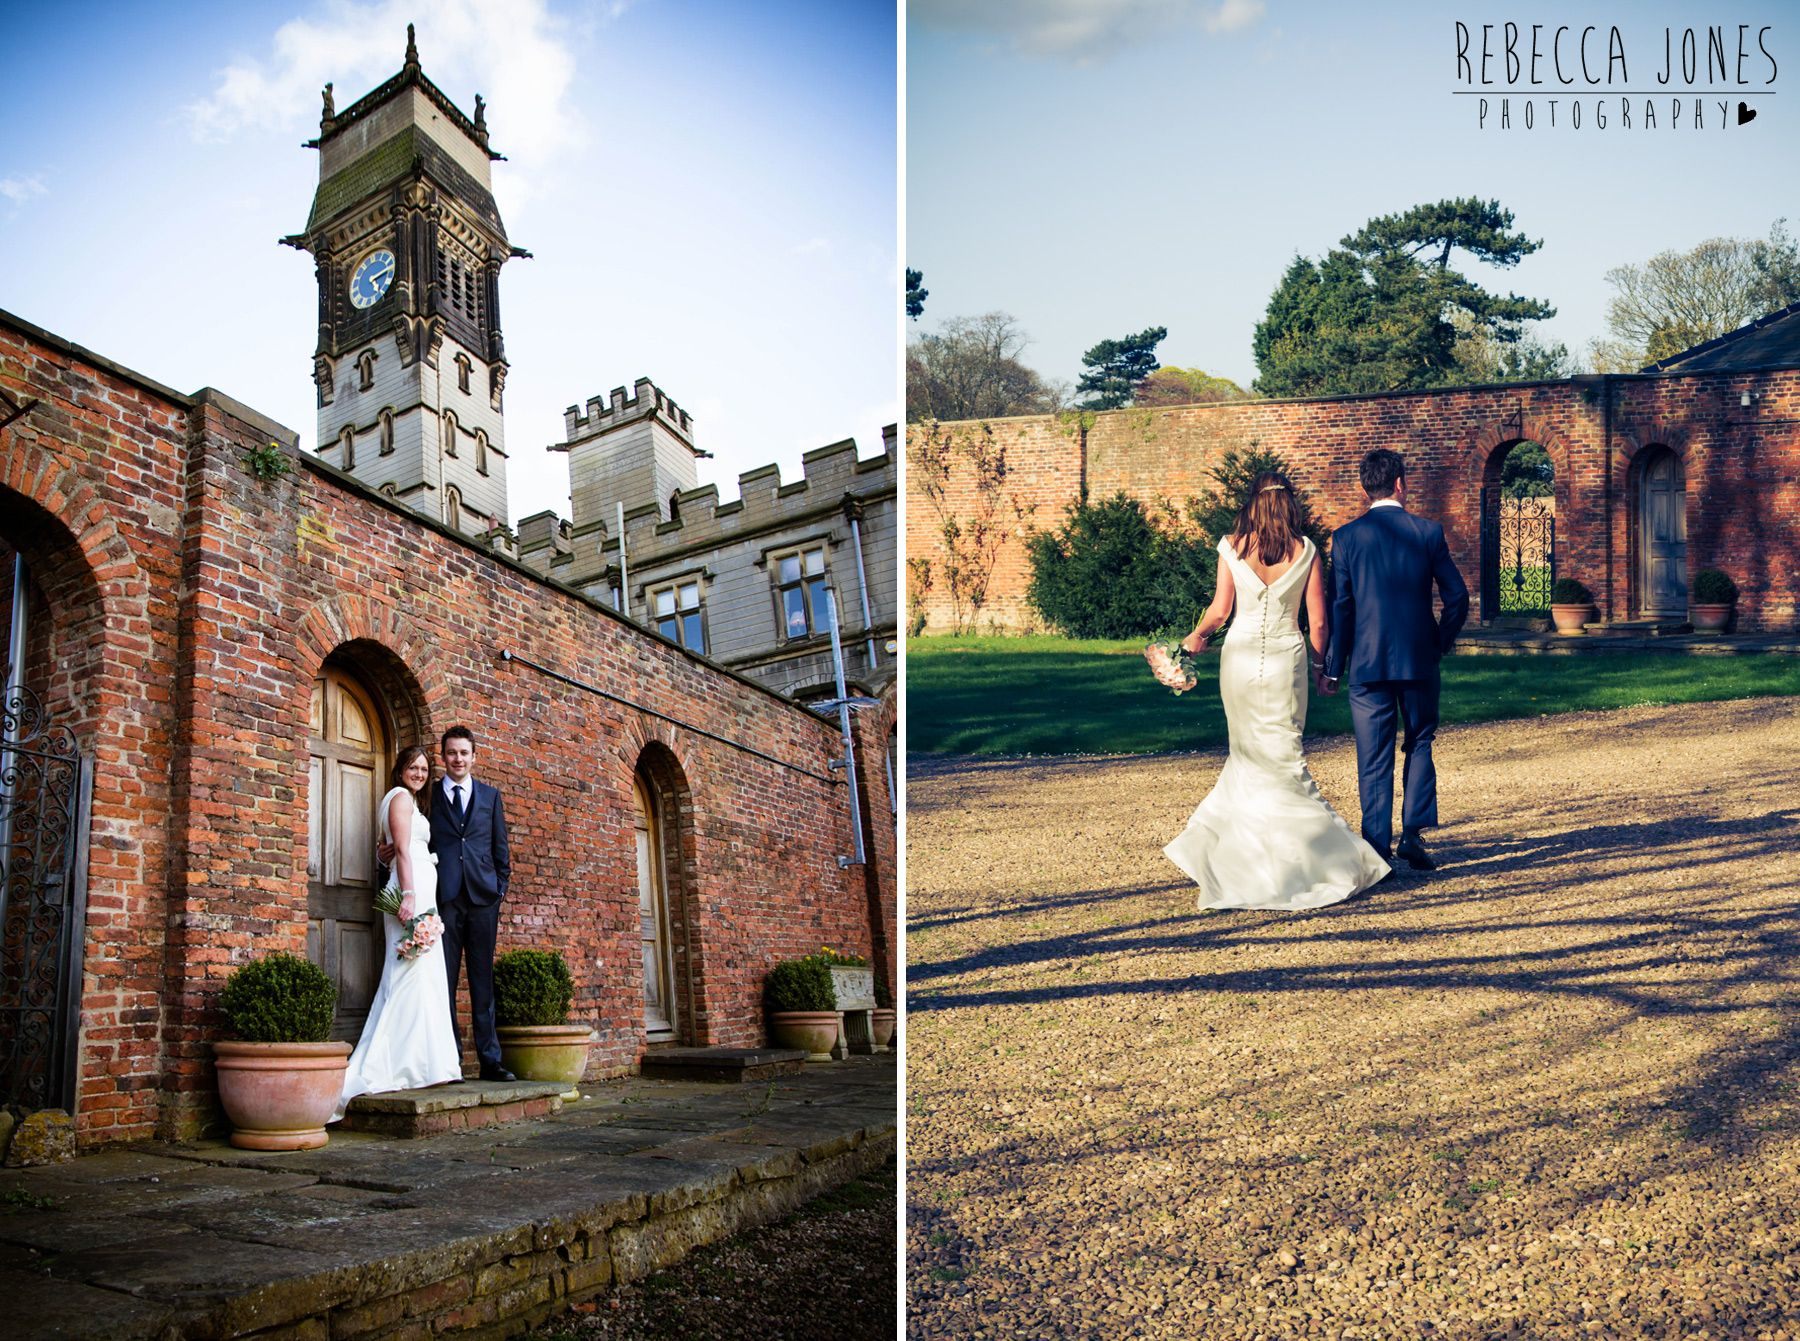 budget wedding venues north yorkshire%0A Carlton Towers  North Yorkshire http   www rebeccajonesphotography